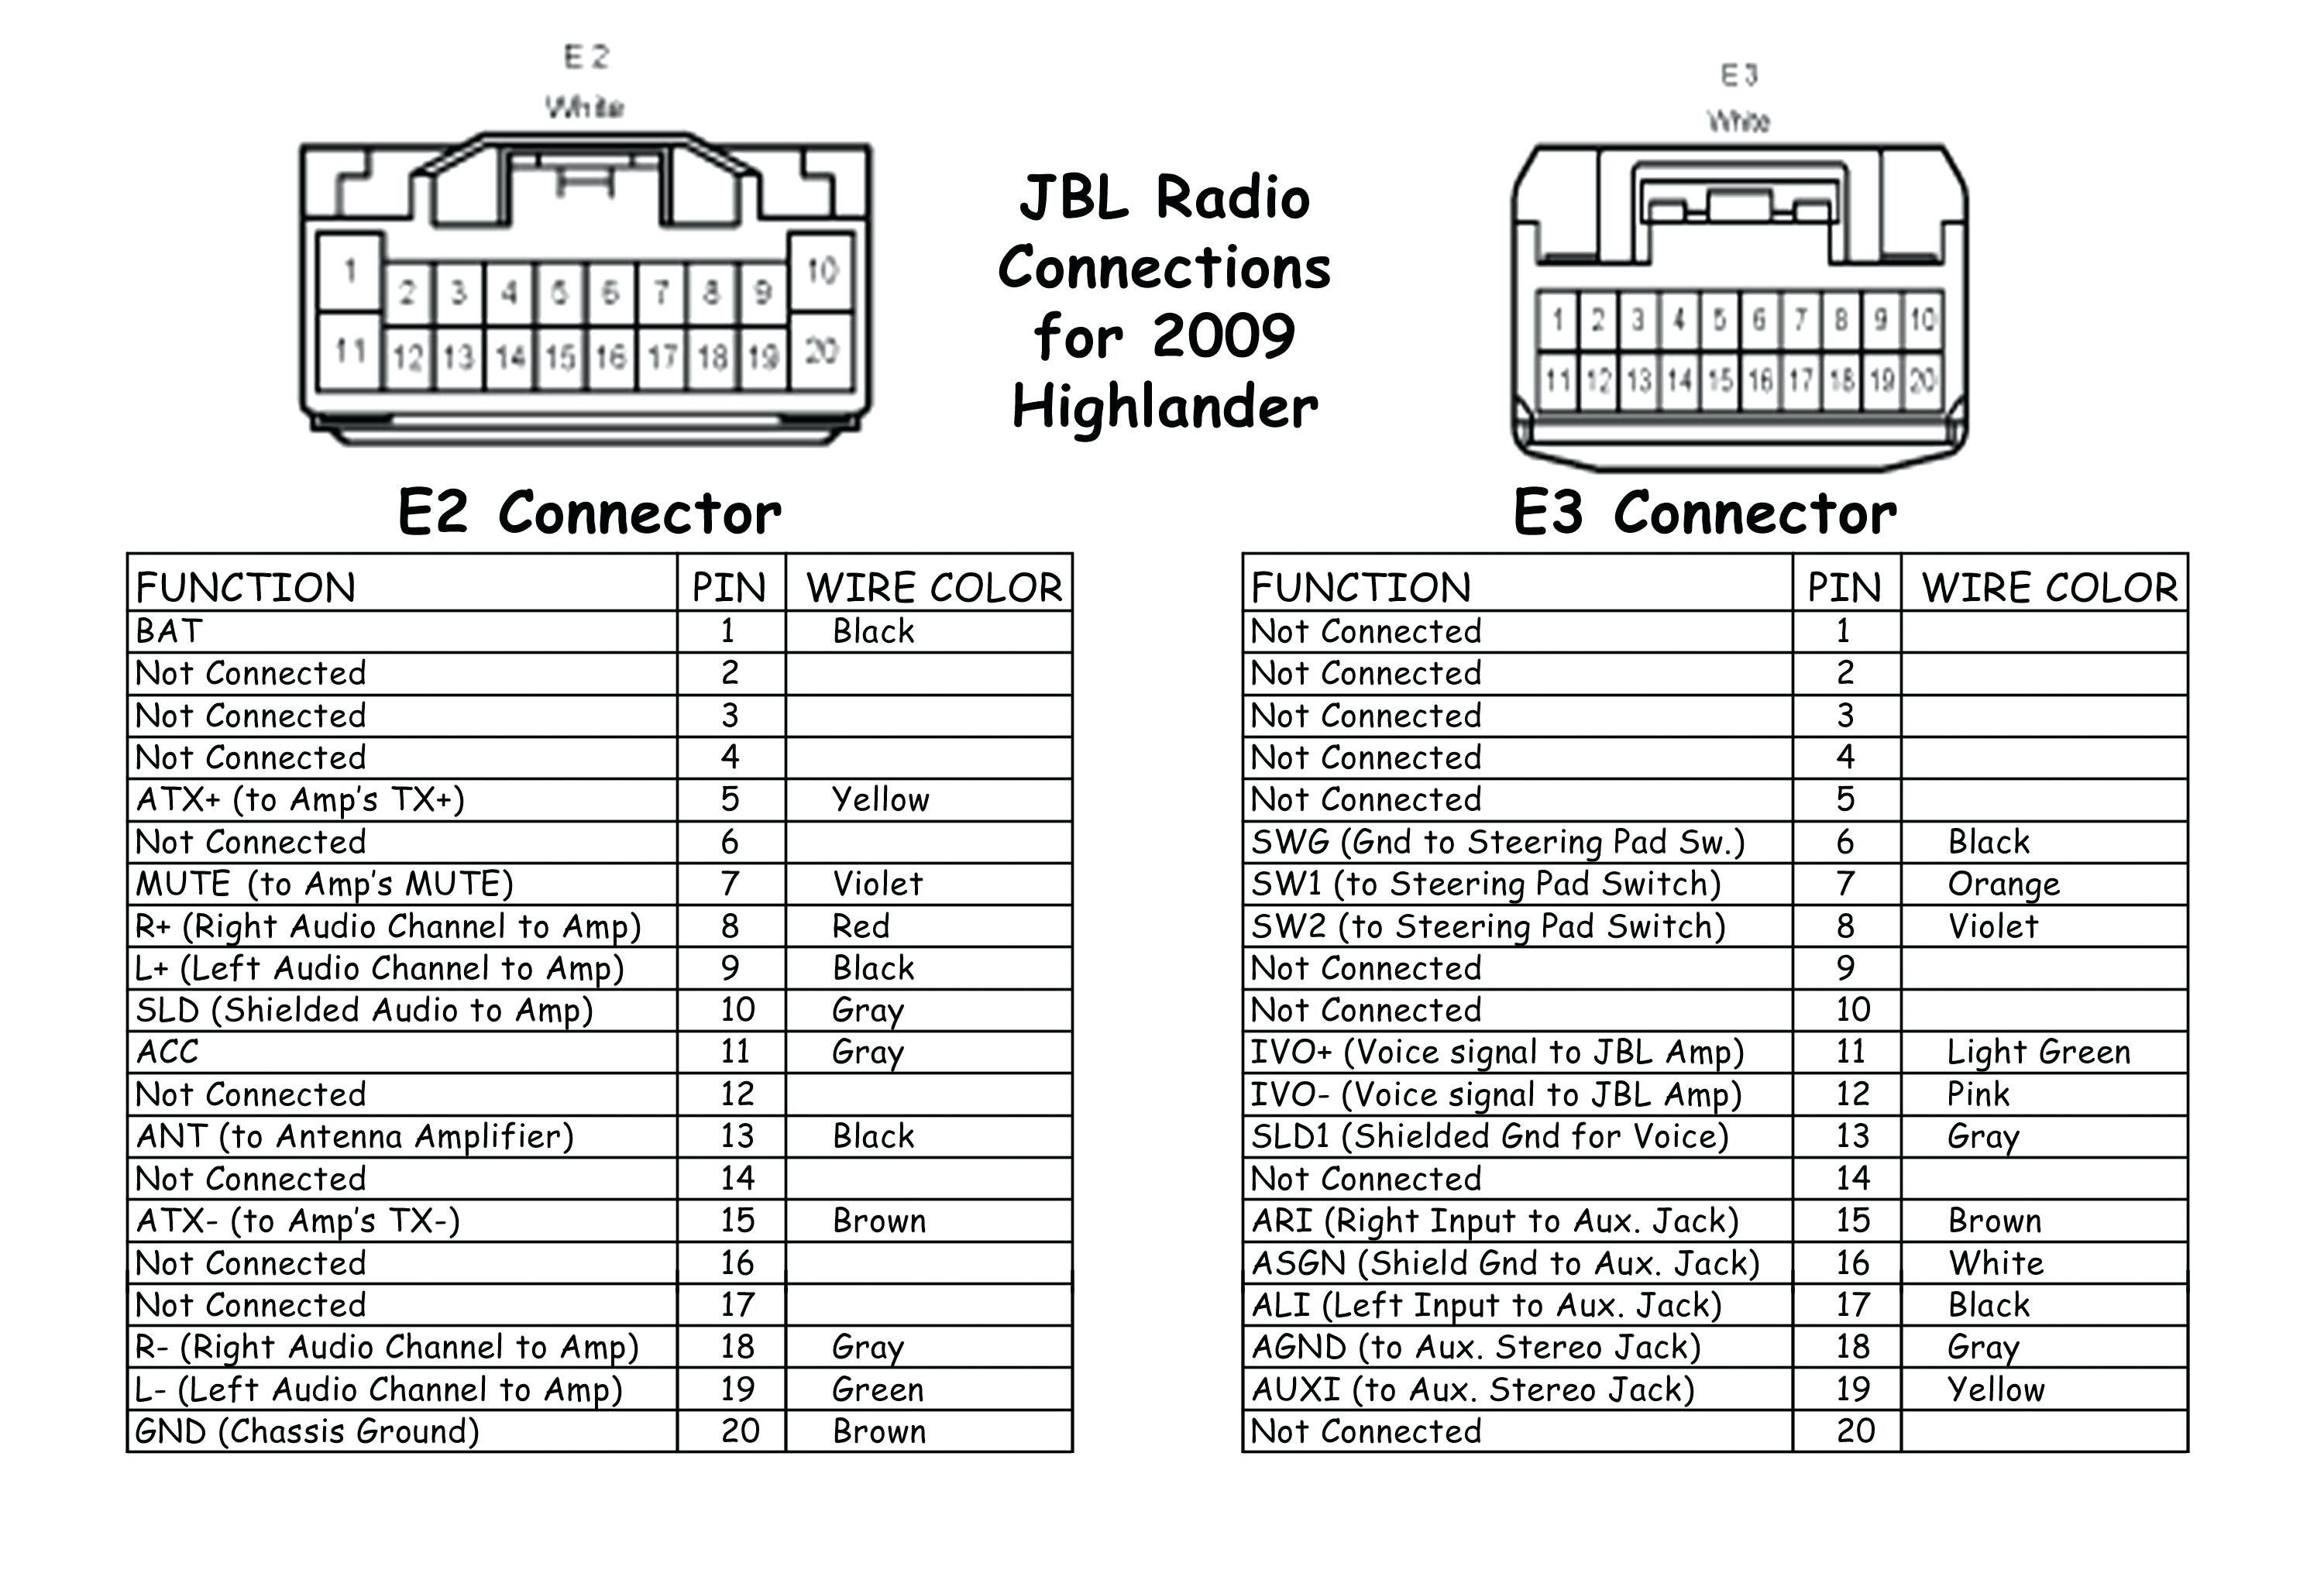 2008 Camry Radio Wiring Diagram - Wiring Diagram Replace way-archive -  way-archive.miramontiseo.it | 2008 Camry Wiring Diagram |  | way-archive.miramontiseo.it